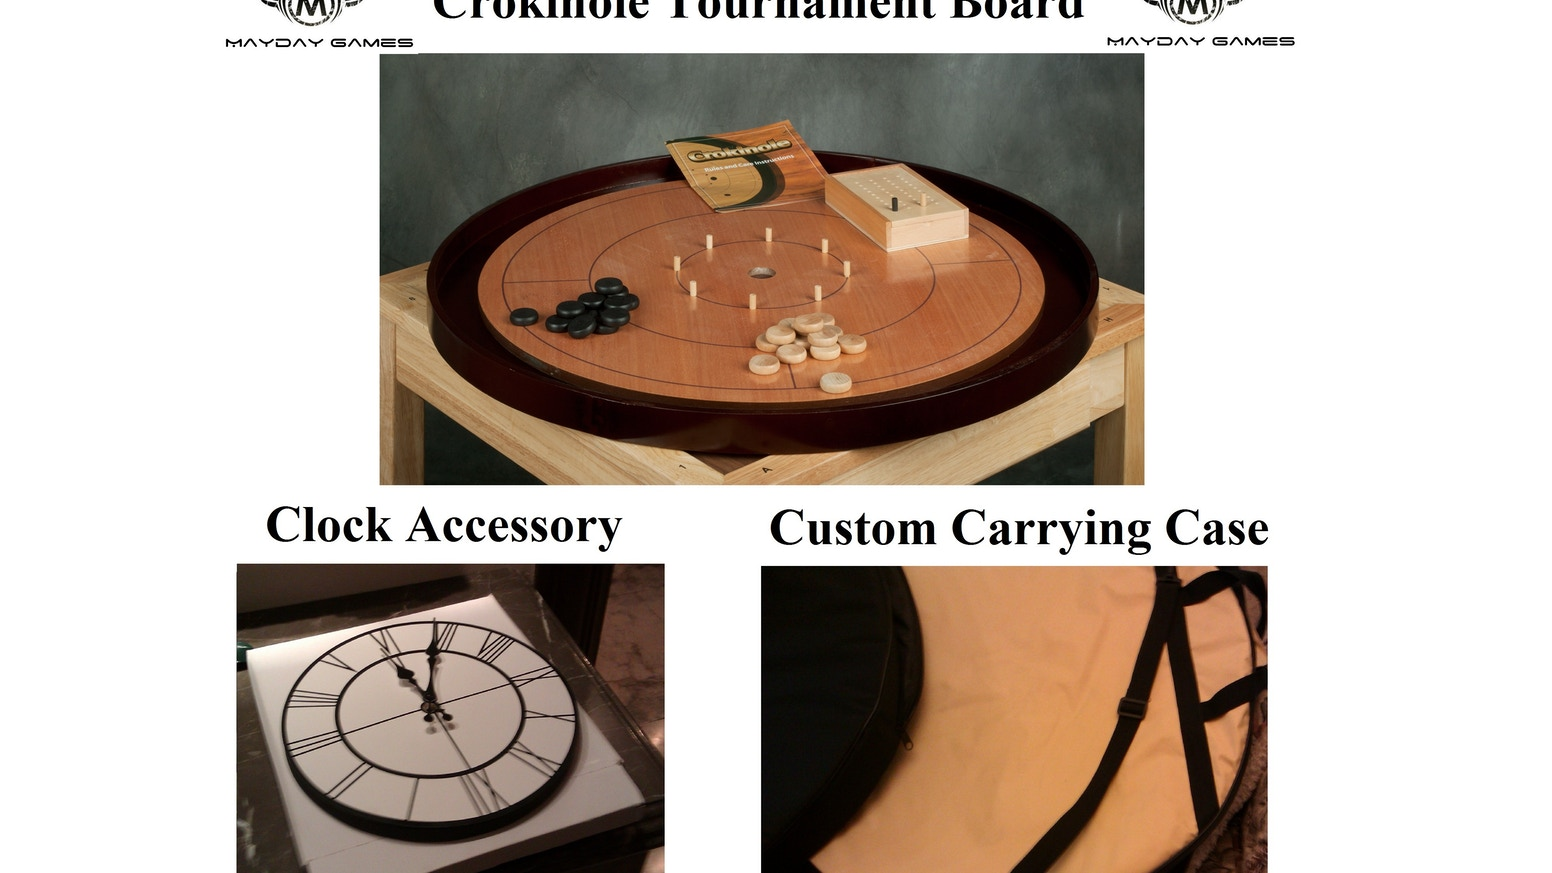 Your chance to help fund a Tournament Sized Hardwood Crokinole Board, Custom Carrying Case or Clock Accessory! Check the Early Specials